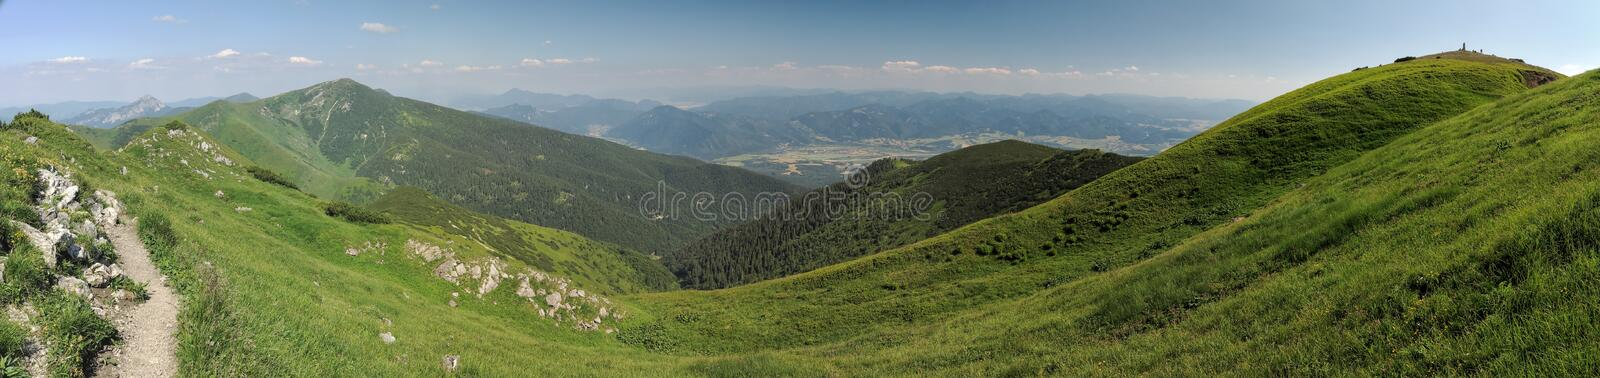 North view from Maly Krivan mountain in Mala Fatra mountains stock photography